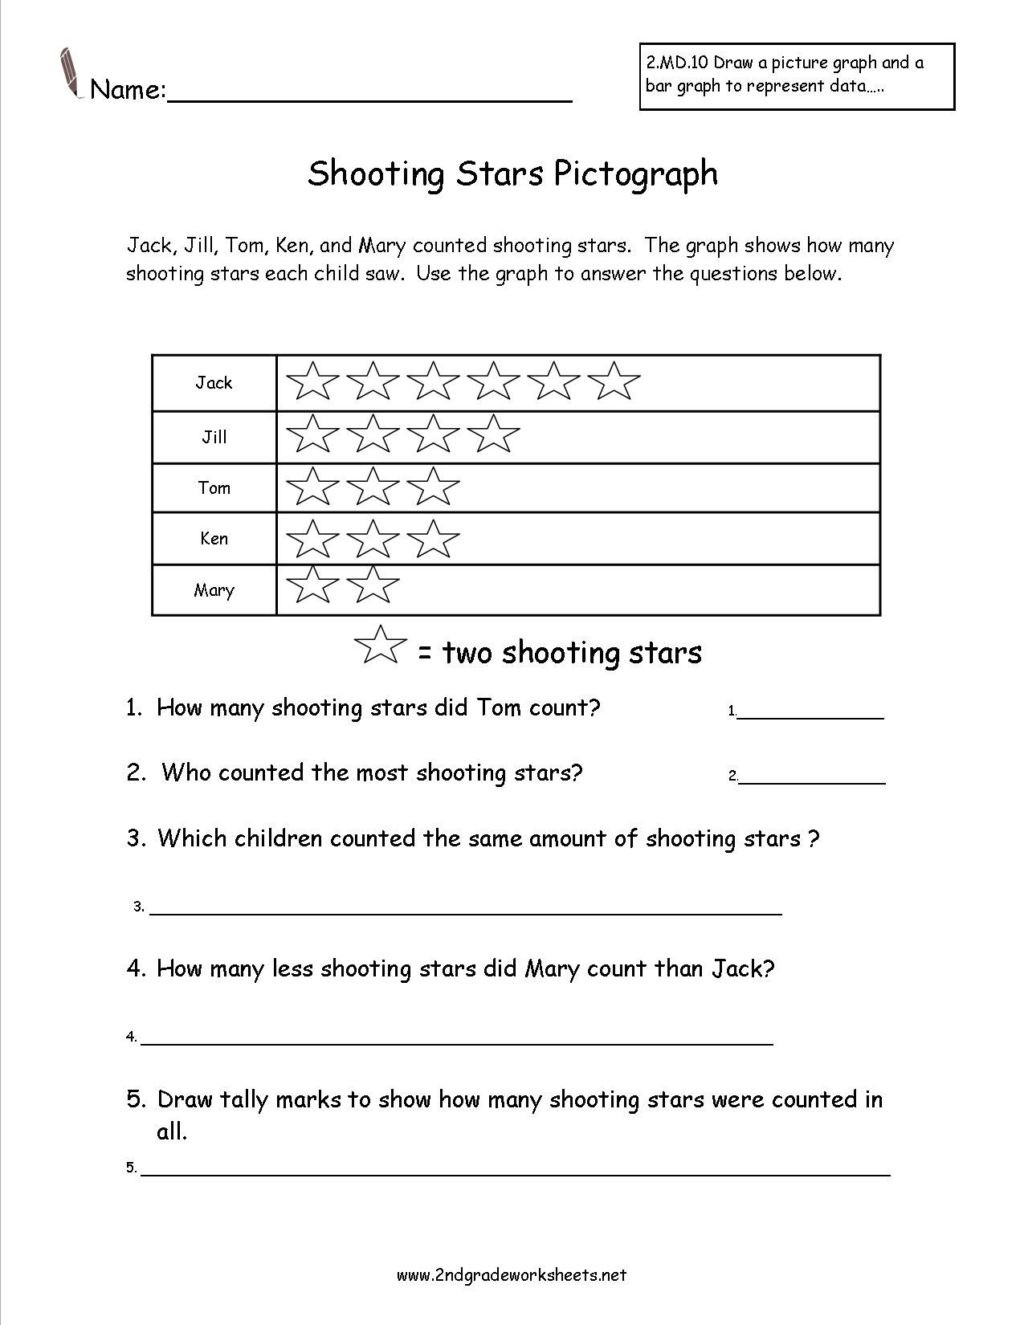 Line Graph Worksheet 3rd Grade Worksheet 2nd Grade Phonics Worksheets Worksheet Shooting